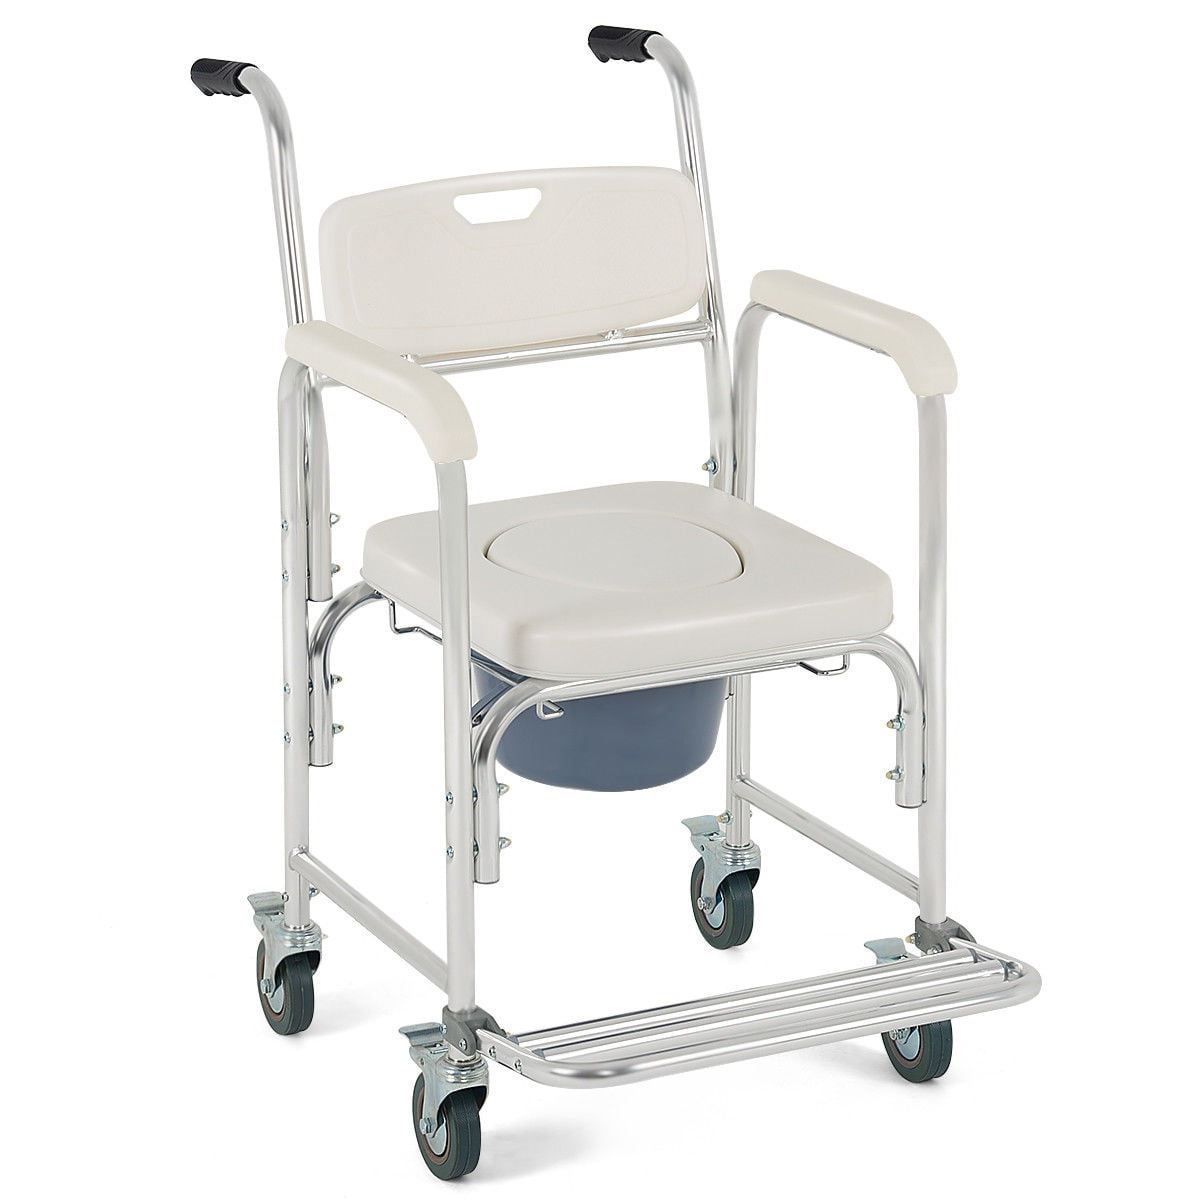 Medical Commode Wheelchair Bedside Toilet Seat Bathroom Shower w Locking  Casters